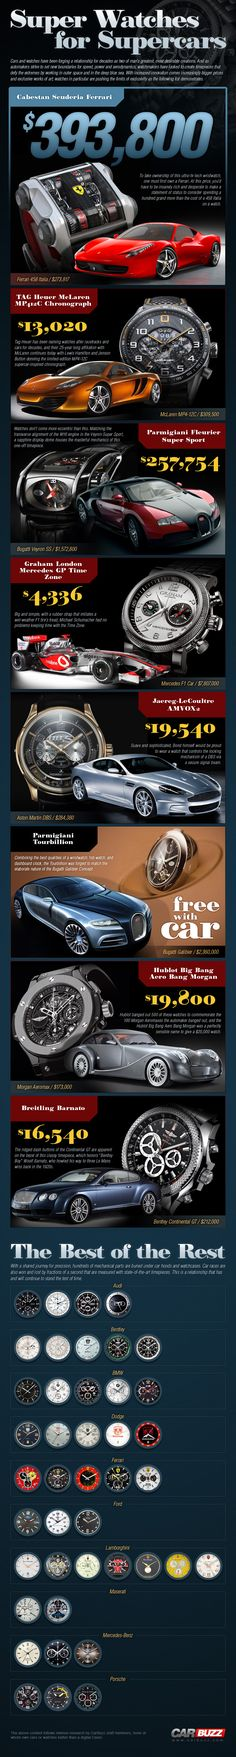 Super Watches for Super Cars... Racing Watches: http://search.princetonwatches.com/index?N=0=men%20race